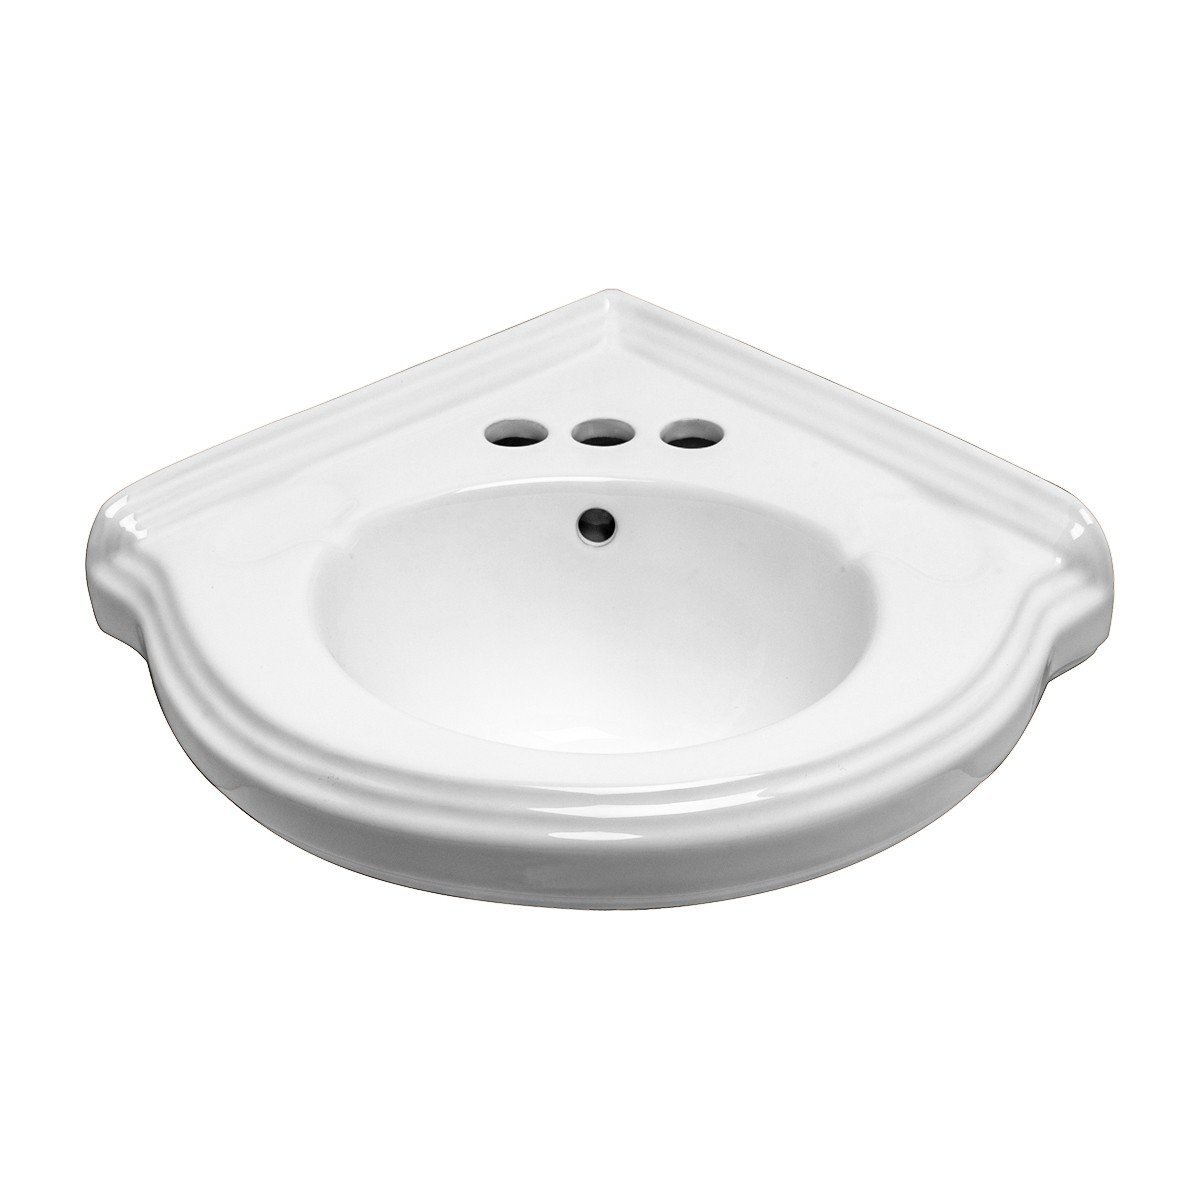 White Bathroom Sink Corner Wall Hung Console Vitreous China Ceramic Small  Sink   Corner Bathroom Sinks   Amazon.com